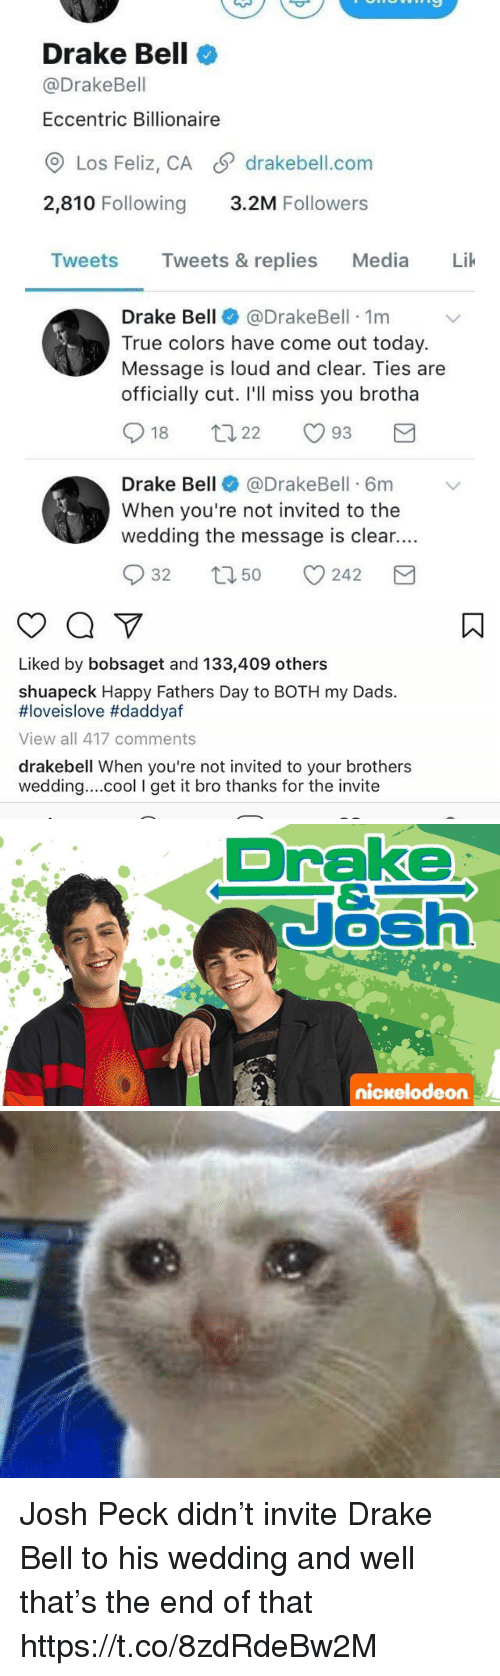 Josh Peck: Drake Bell  @Drake Bell  Eccentric Billionaire  CO Los Feliz, CA SP drakebell.com  2,810 Following  3.2M Followers  Tweets  Tweets & replies  Media  Lik  Drake Bell  @Drake Bell 1m  True colors have come out today.  Message is loud and clear. Ties are  officially cut. I'll miss you brotha  S t 22  18  93  Drake Bell  @DrakeBell 6m v  When you're not invited to the  wedding the message is clear....  S 32 t 50 242  M   Liked by bobsaget and 133,409 others  shuapeck Happy Fathers Day to BOTH my Dads.  HIoveislove #daddyaf  View all 417 comments  drakebell When you're not invited to your brothers  wedding....cool I get it bro thanks for the invite   Drake  Nash  nickelodeon Josh Peck didn't invite Drake Bell to his wedding and well that's the end of that https://t.co/8zdRdeBw2M